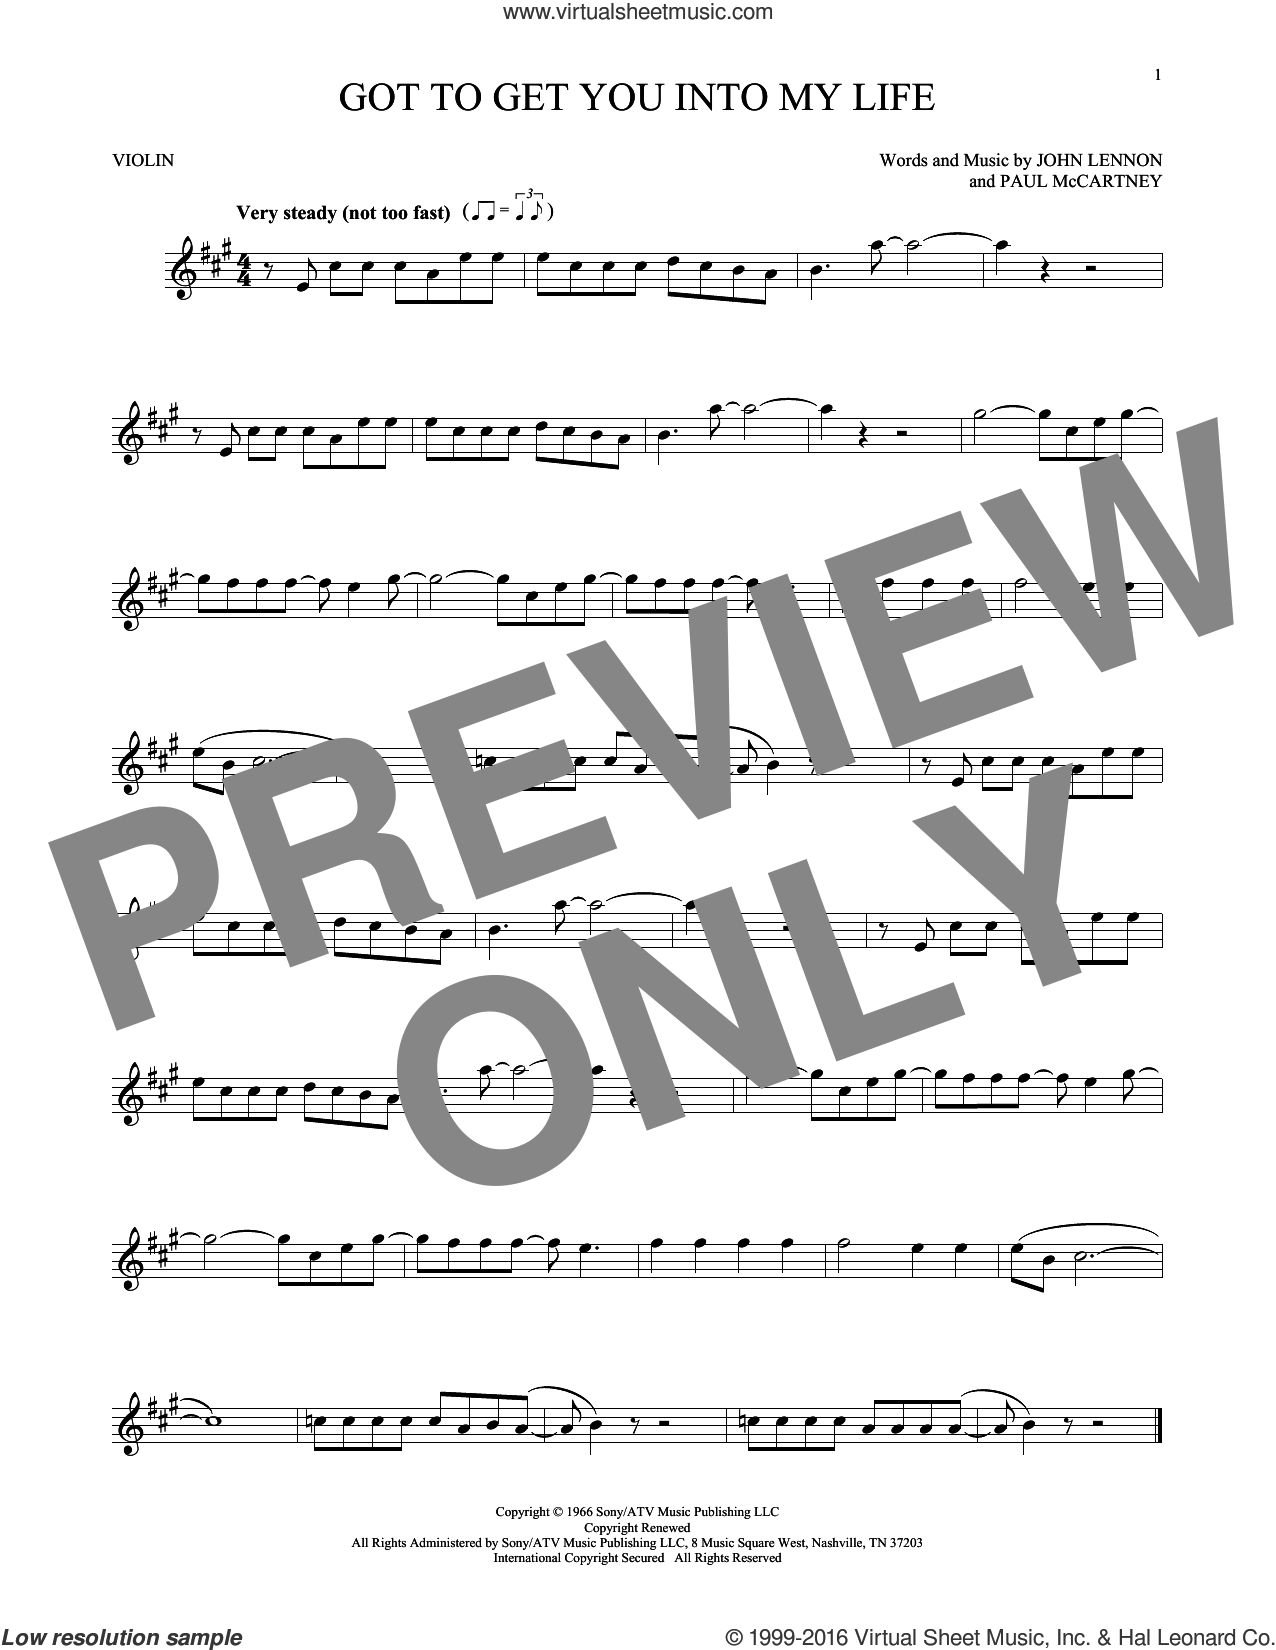 Got To Get You Into My Life sheet music for violin solo by The Beatles, John Lennon and Paul McCartney, intermediate violin. Score Image Preview.